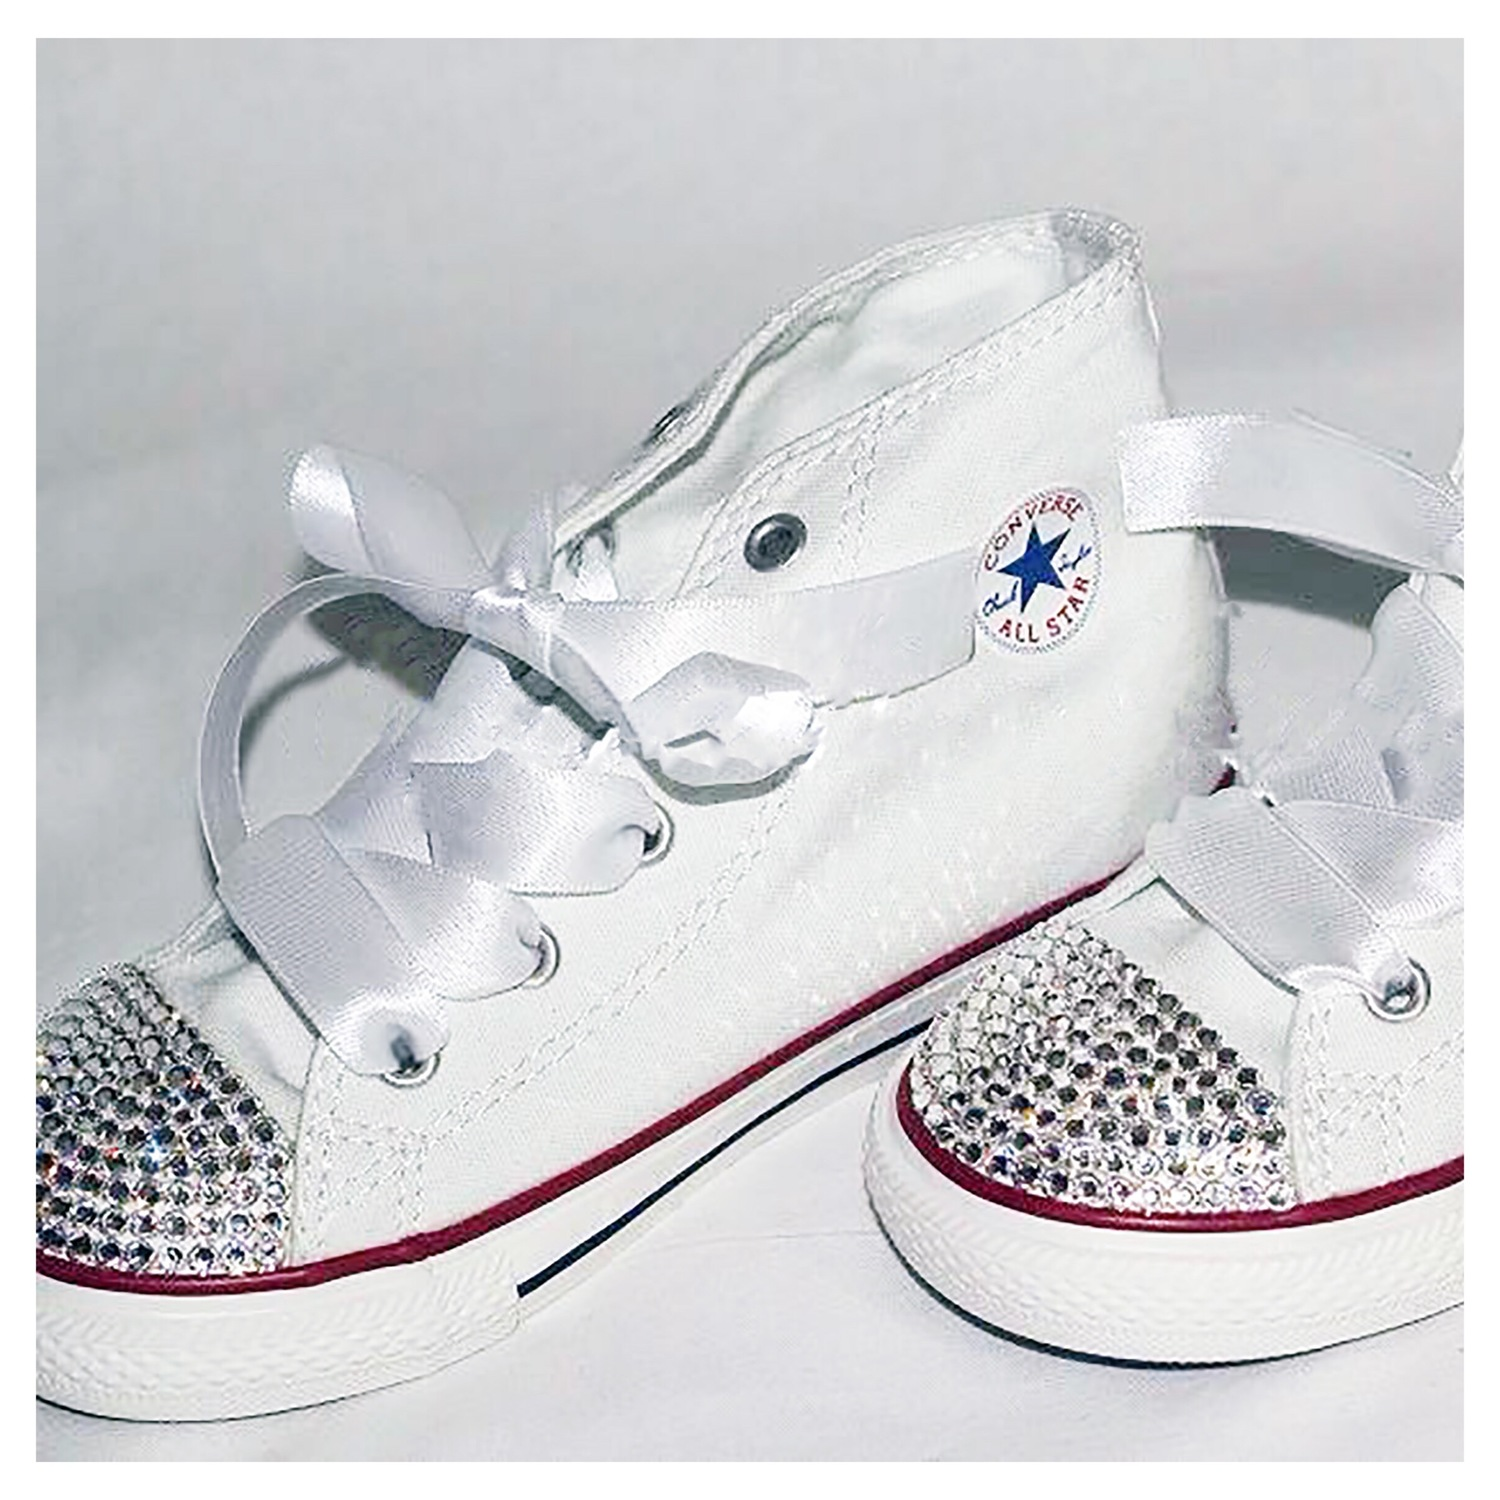 971875978e8d1 Swarovski Crystal Sparkly Bling Converse Trainers (Children's High ...